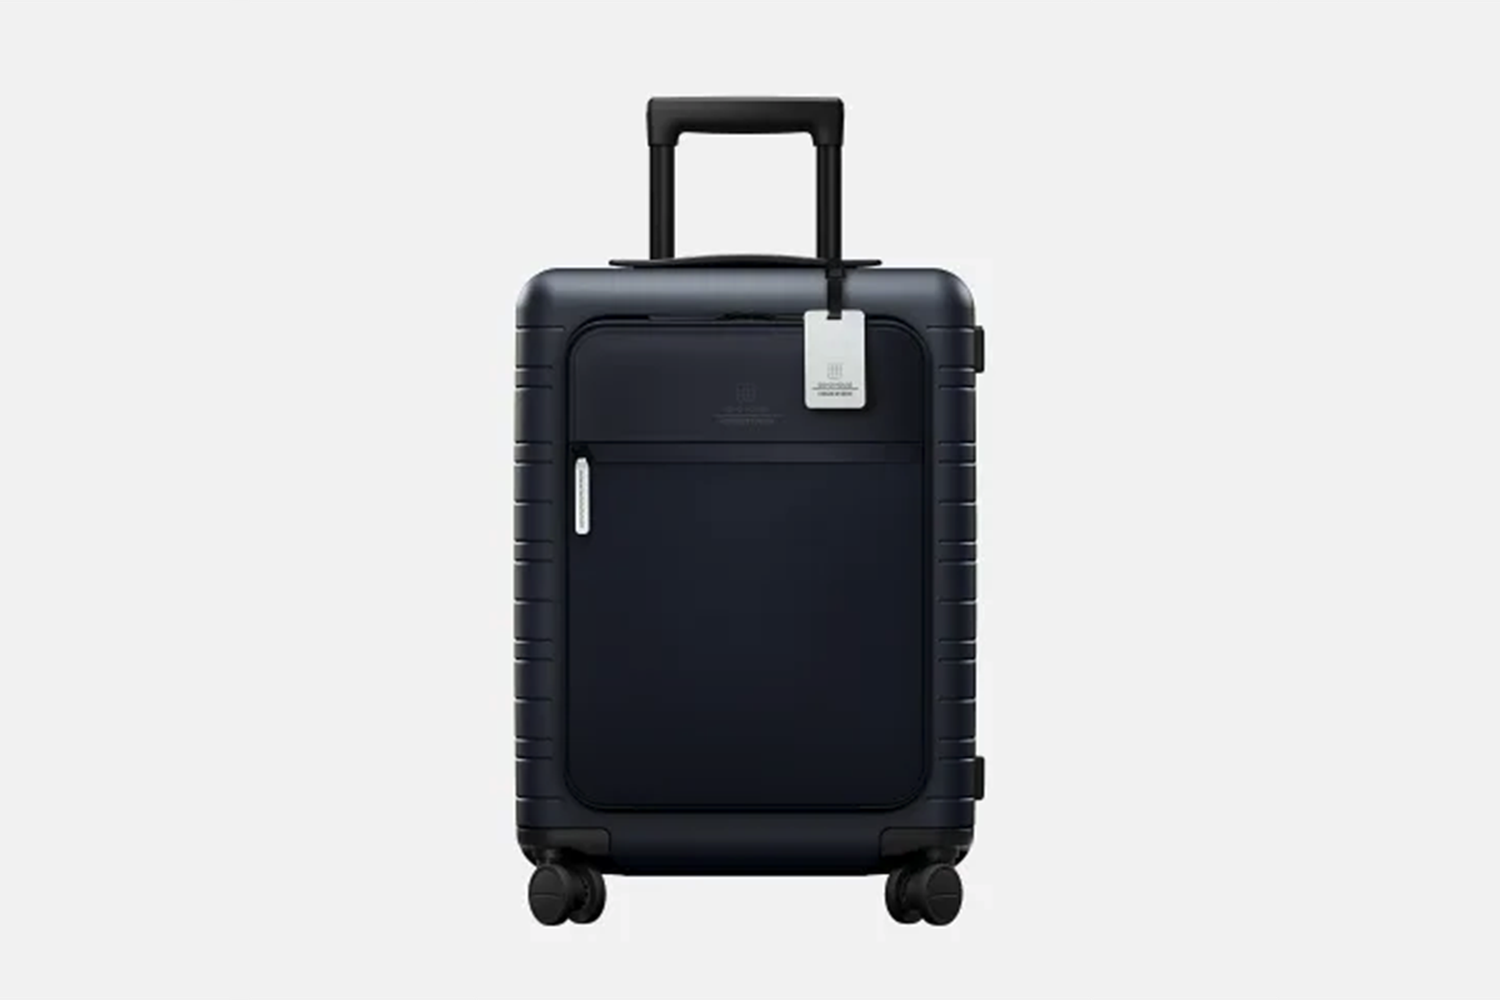 M5 Soho House Edition Cabbin Luggage